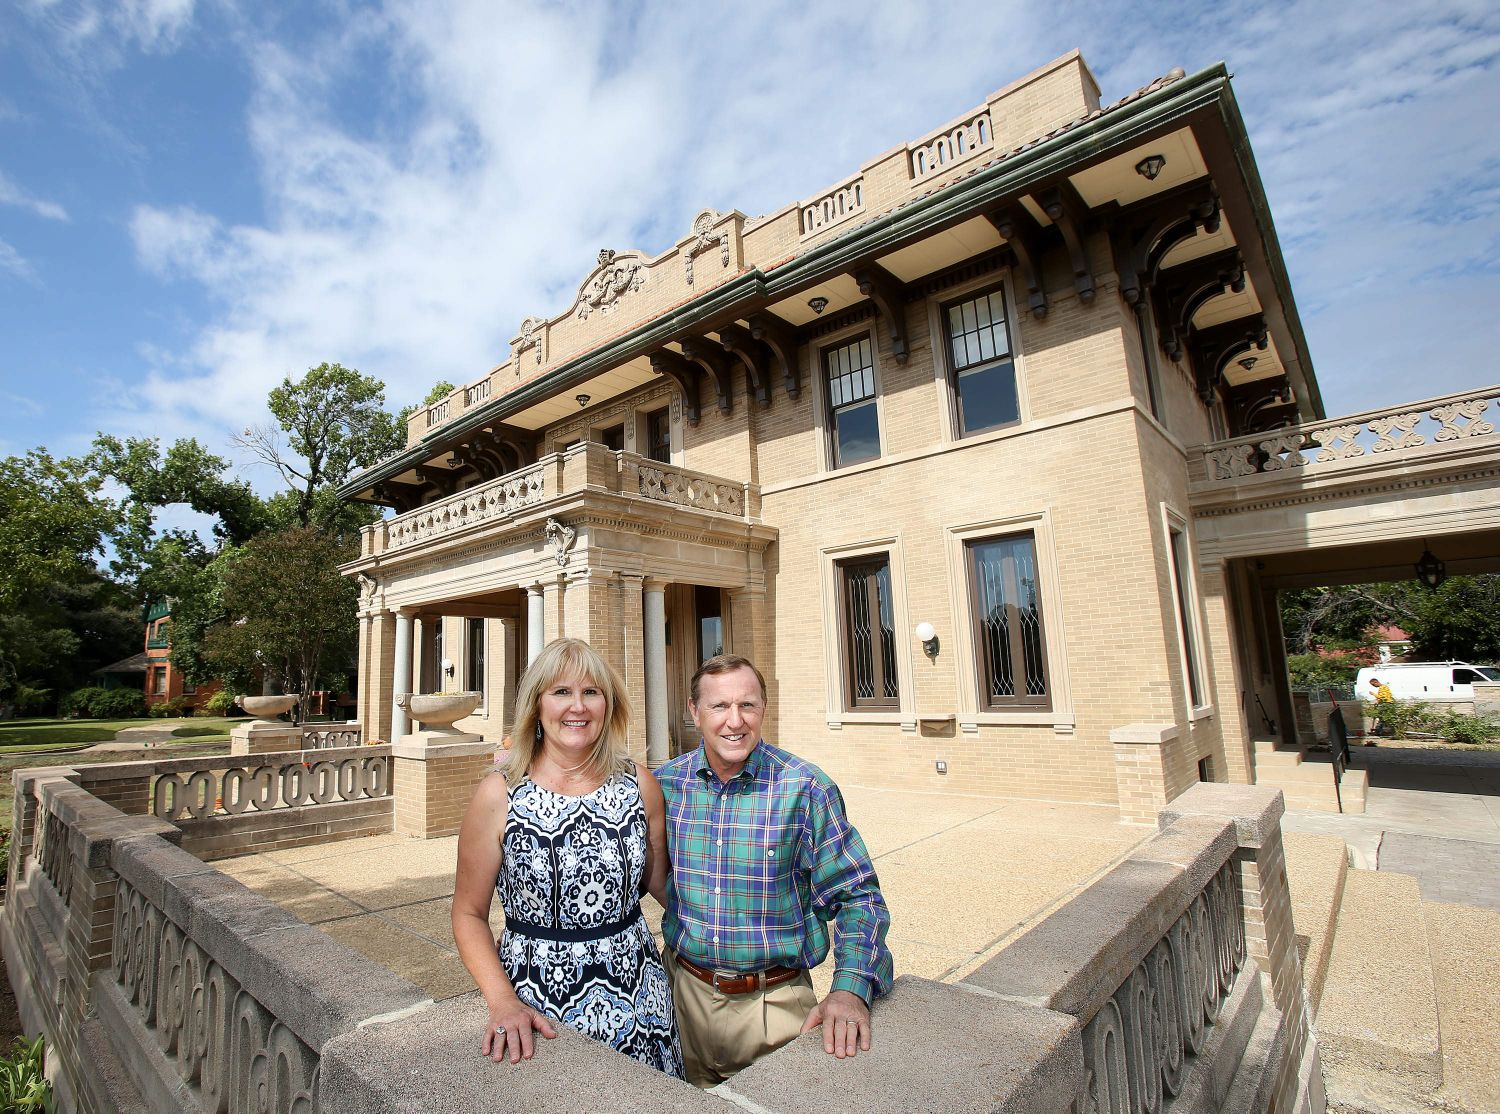 Downtown Waco S Grand Migel Mansion Gets New Life As Bed And Breakfast Wacotrib Com Waco Today